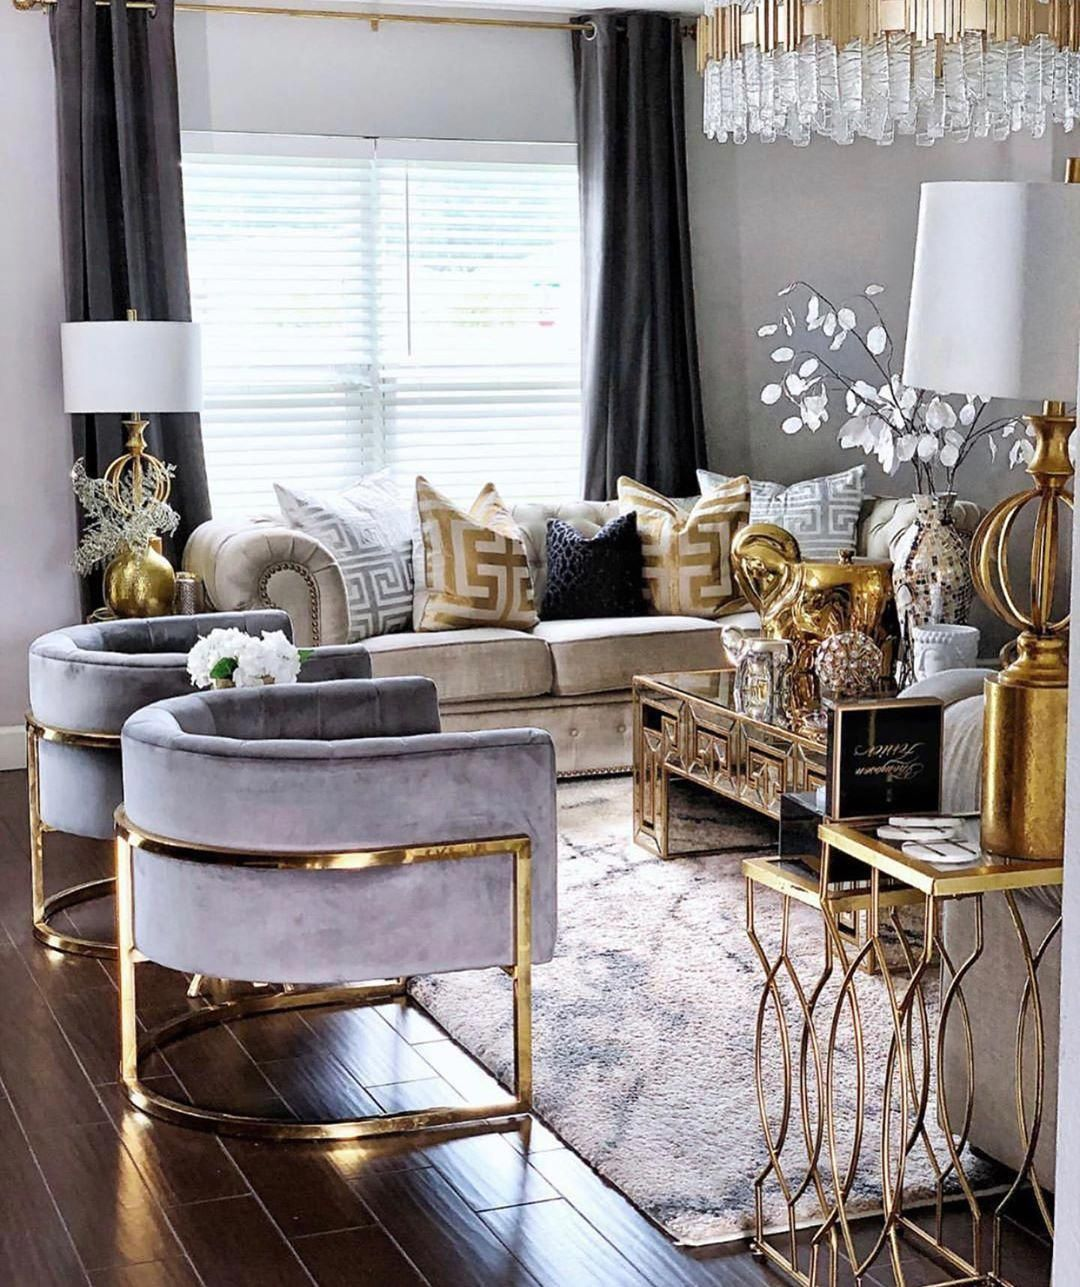 Exciting Top Home Decor Paint Colors Luxuryhomedecor In 2020 Luxury Living Room Design Living Room Design Decor Luxury Living Room